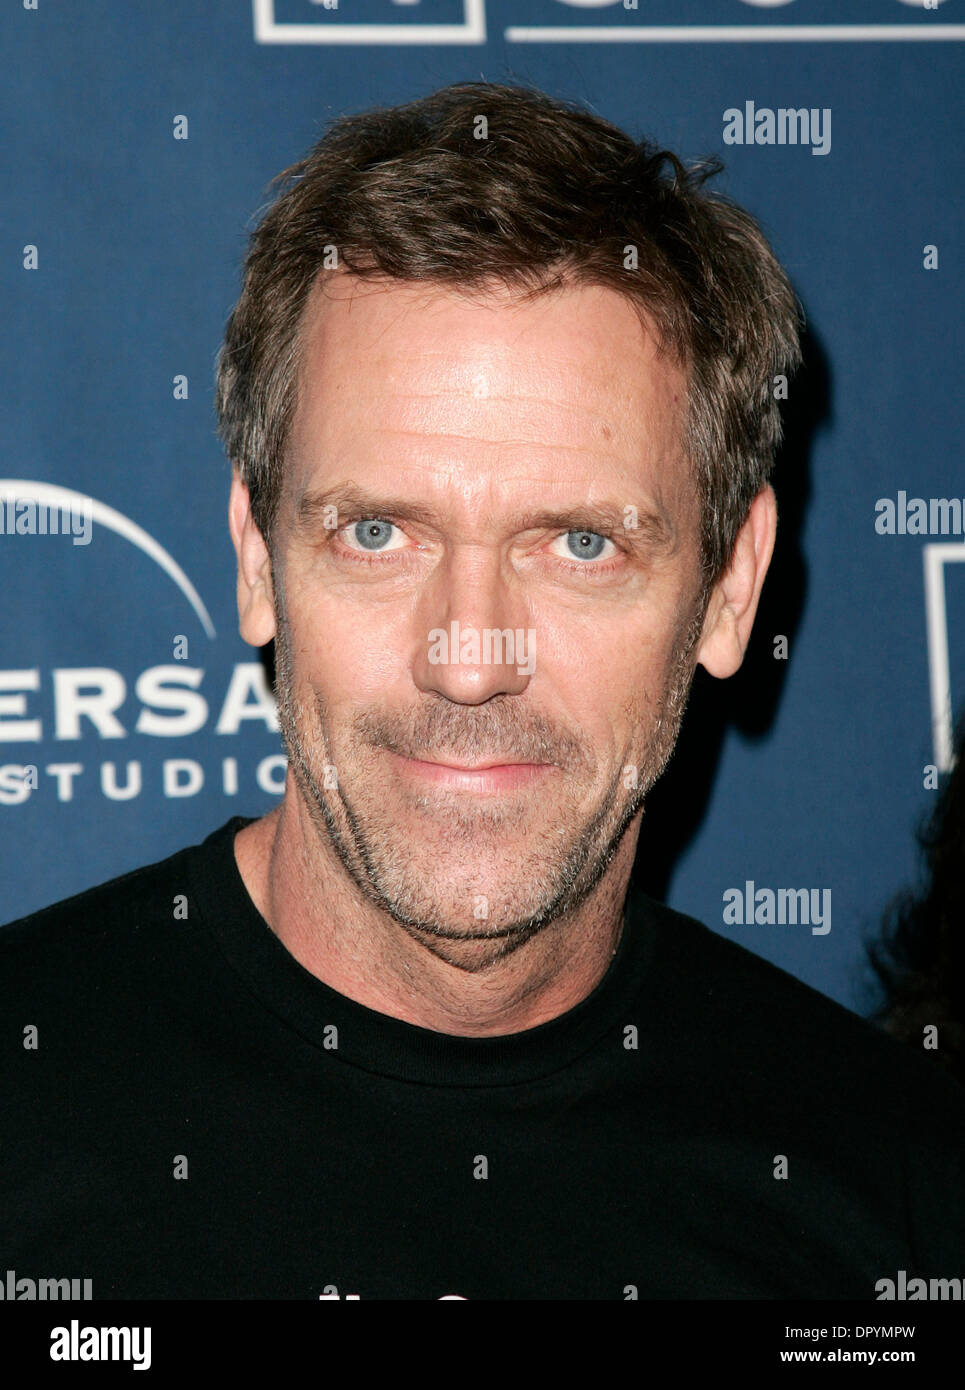 Jan 21, 2009 - West Hollywood, California, USA - Actor HUGH LAURIE arriving to the House' 100th Episode Party held at the STK. (Credit Image: © Lisa O'Connor/ZUMA Press) - Stock Image